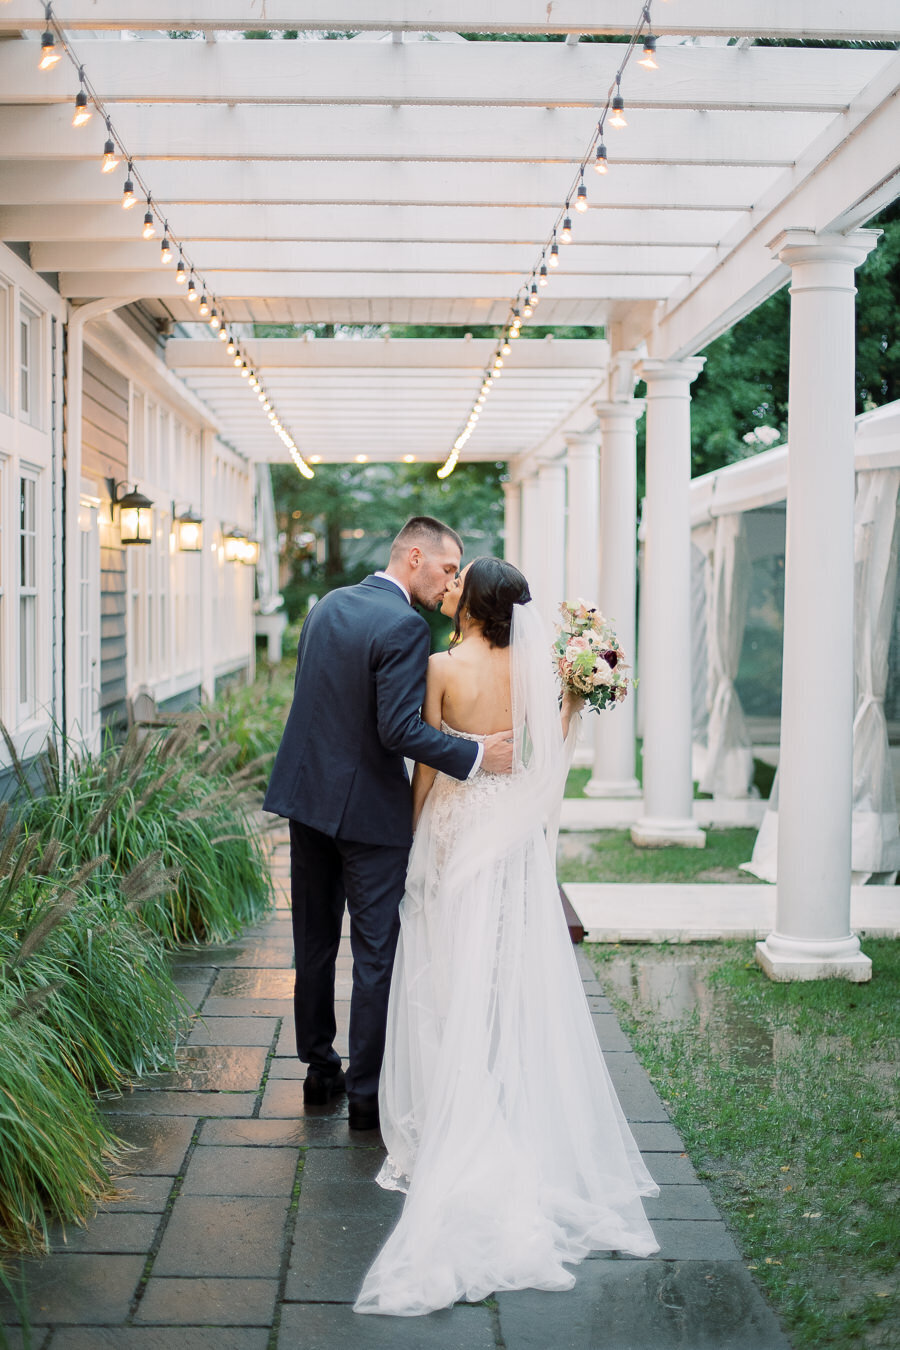 Chesapeake_Bay_Beach_Club_Stevensville_Maryland_Wedding_Megan_Harris_Photography_Blog-80